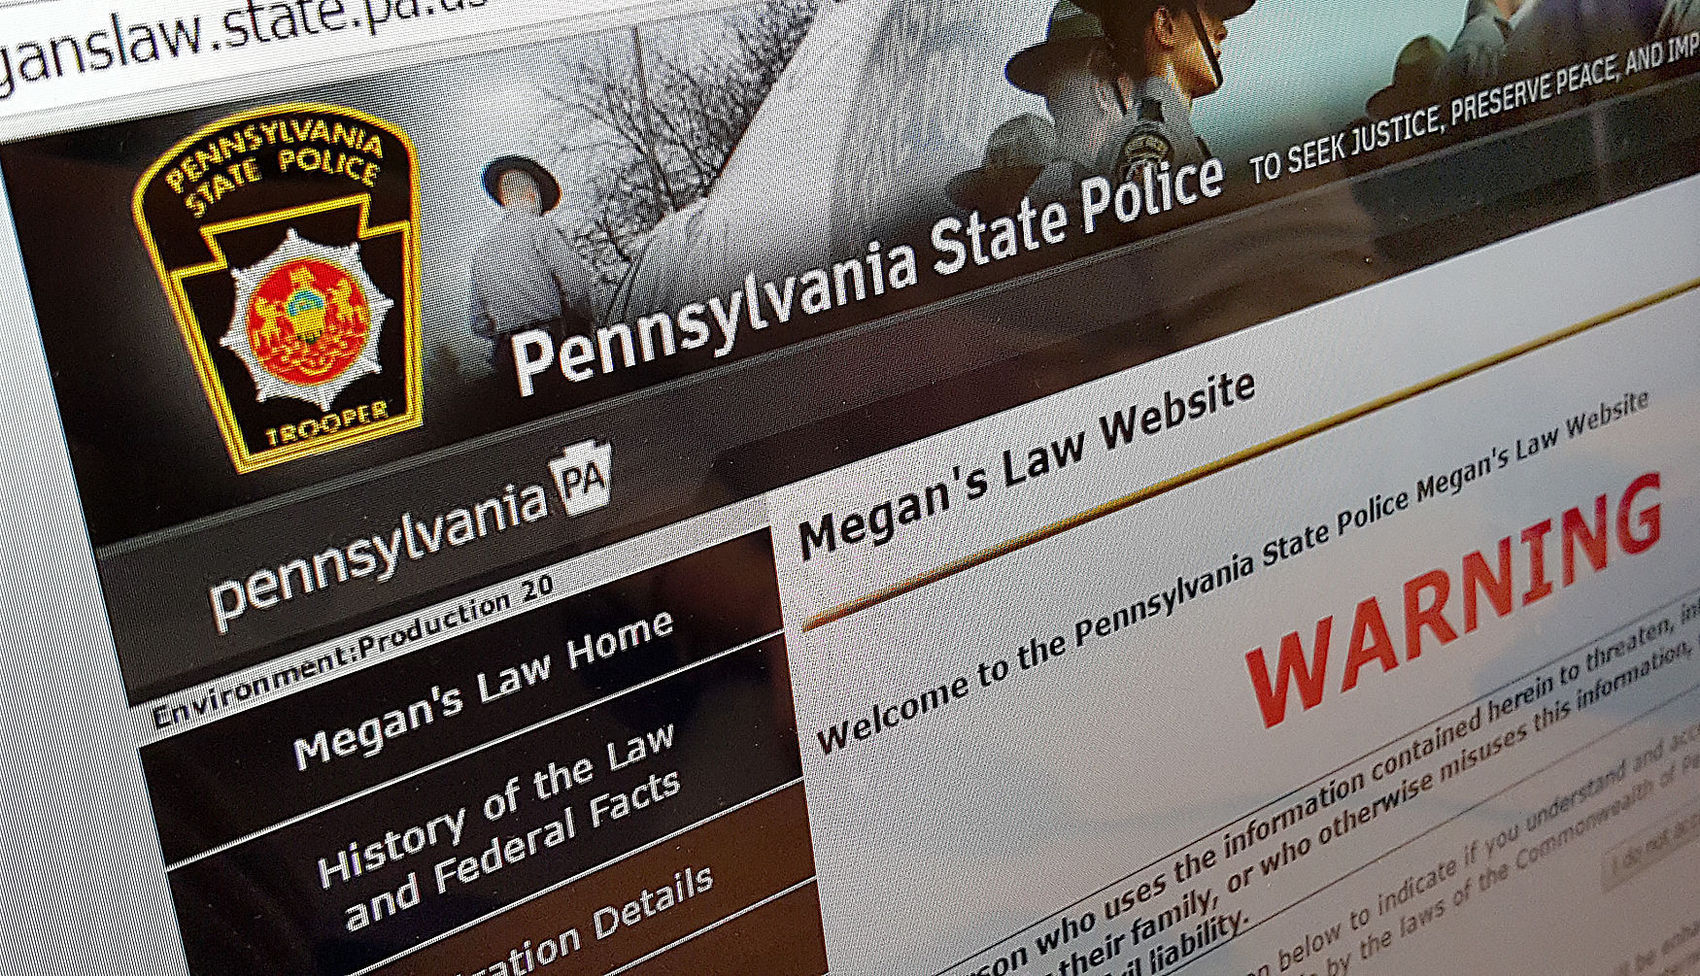 Pennsylvania State Police Megan's Law website